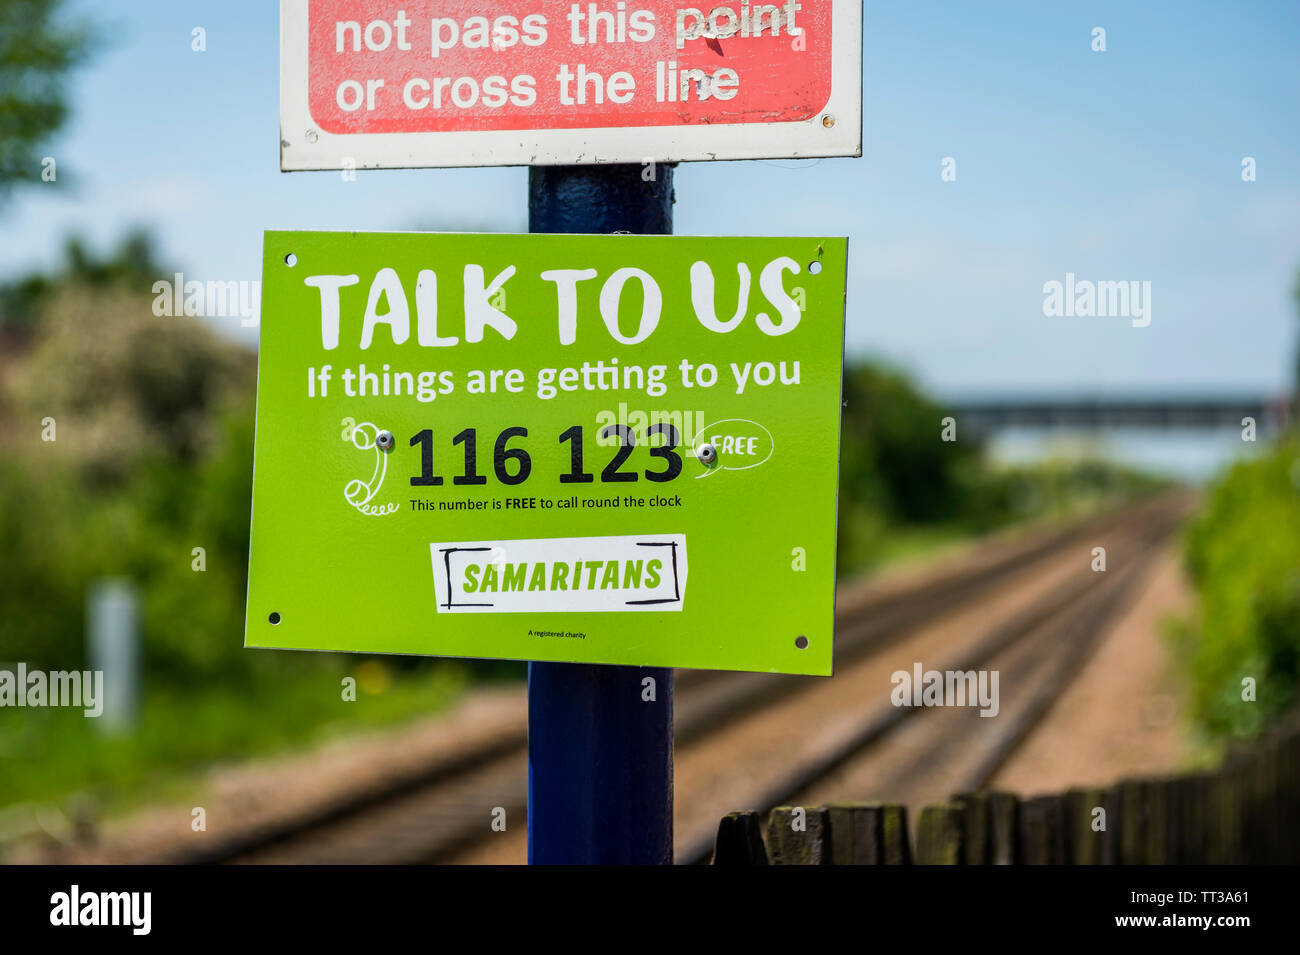 Samaritans sign at the end of the platform at Brough railway station, Yorkshire, England. Stock Photo